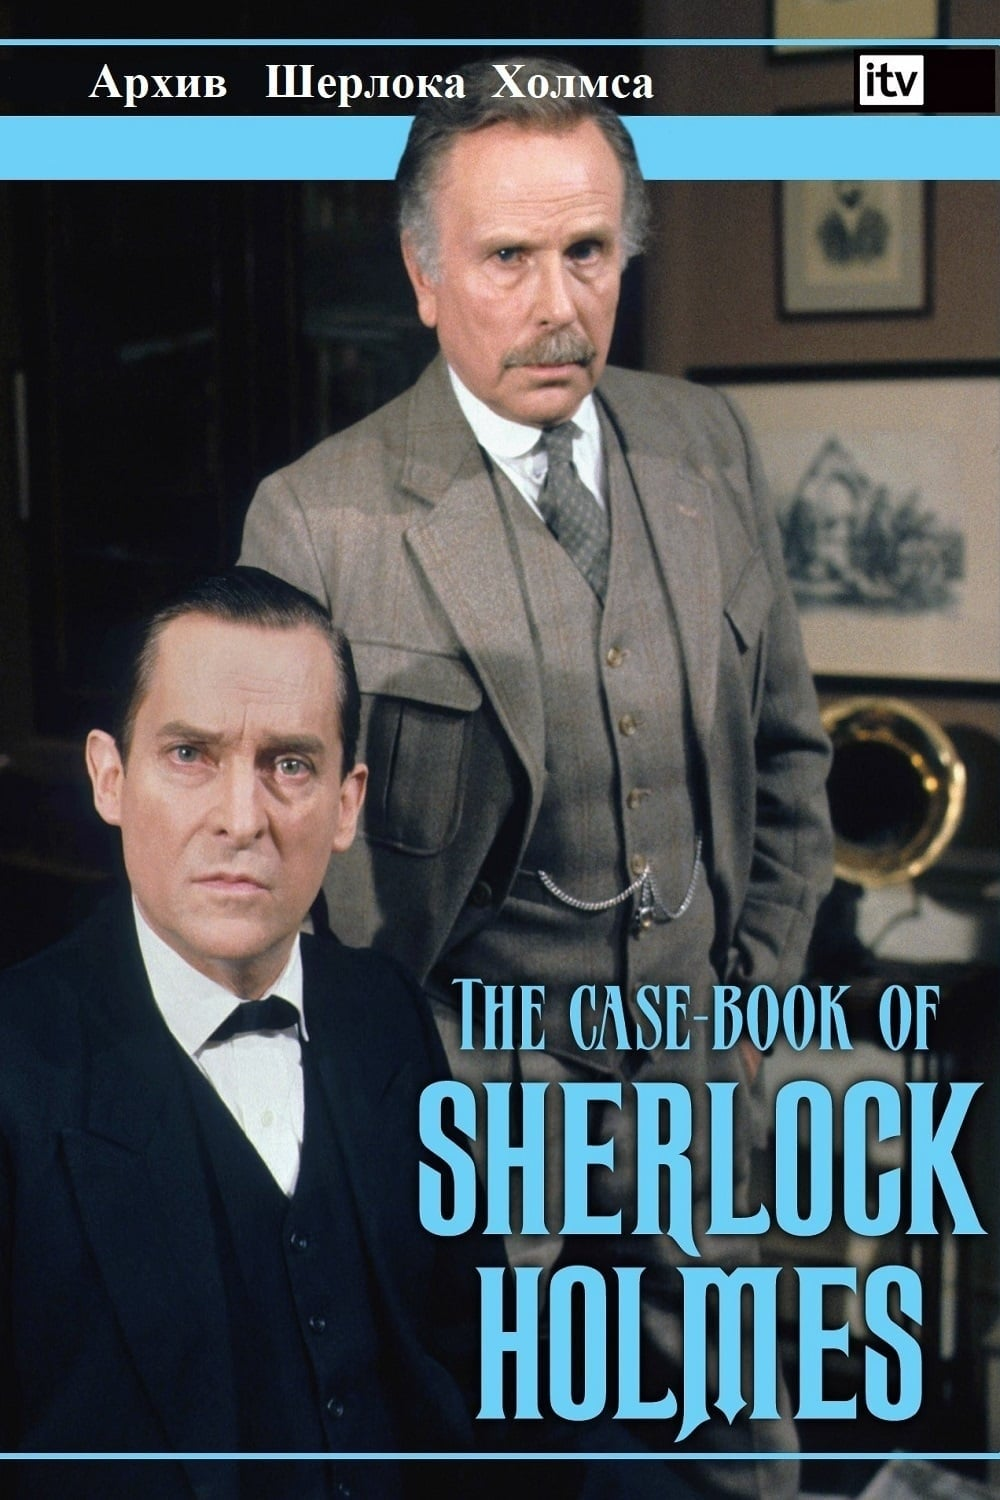 The Case-Book of Sherlock Holmes (1991)